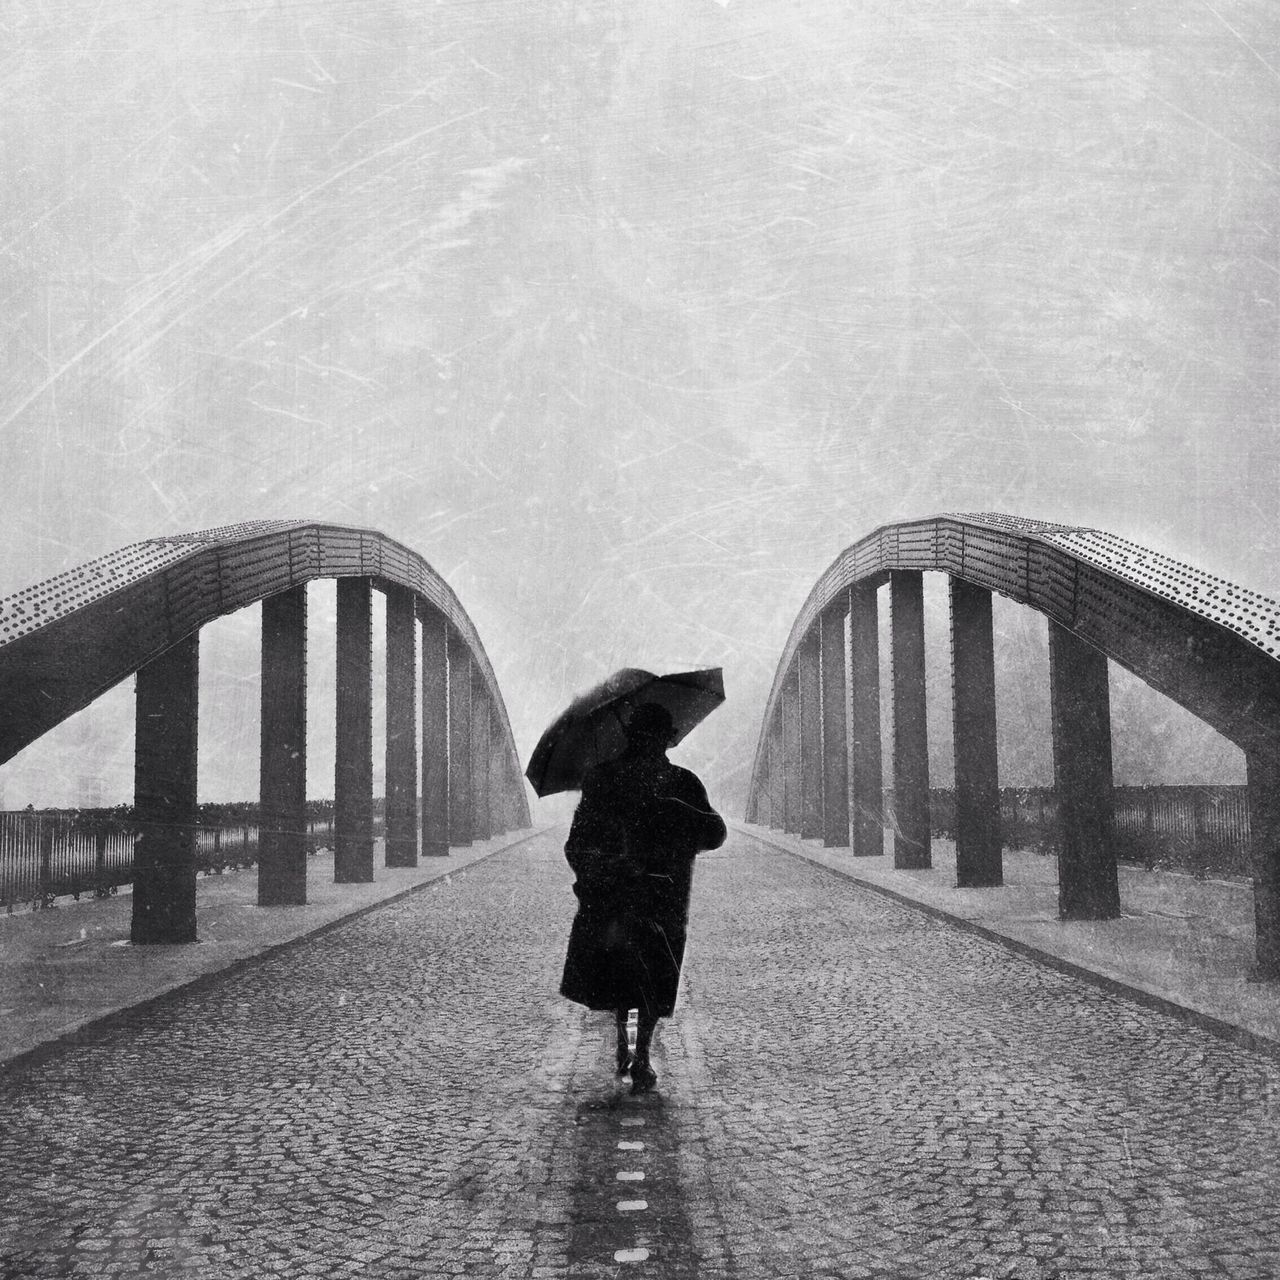 Rainy day EyeEm Best Shots - Black + White Your Art Is Portable With Caseable Rainy Days